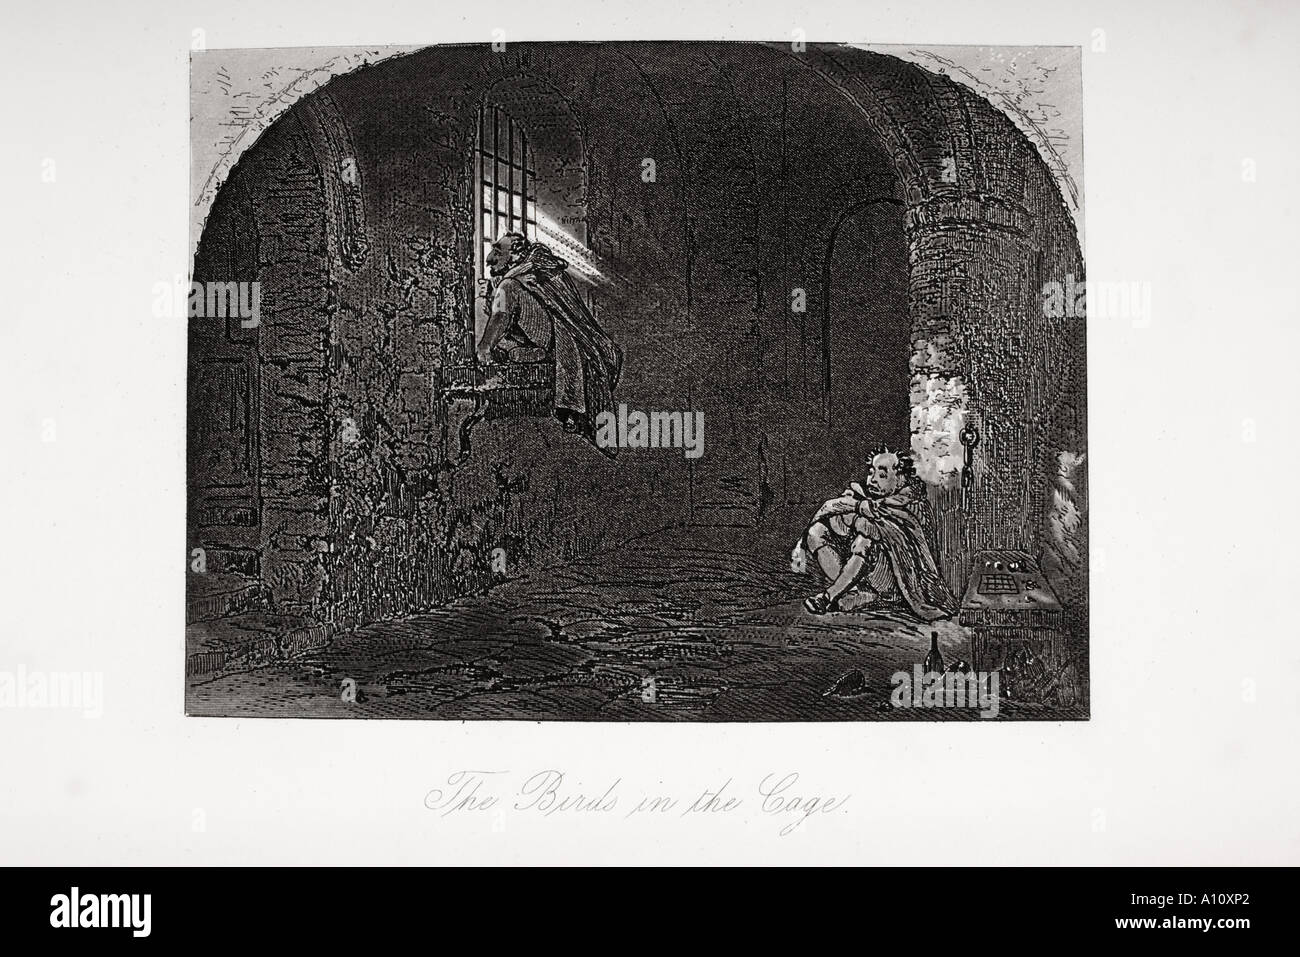 the birds in the cage illustration from the charles dickens novel stock photo the birds in the cage illustration from the charles dickens novel david copperfield by h k browne known as phiz